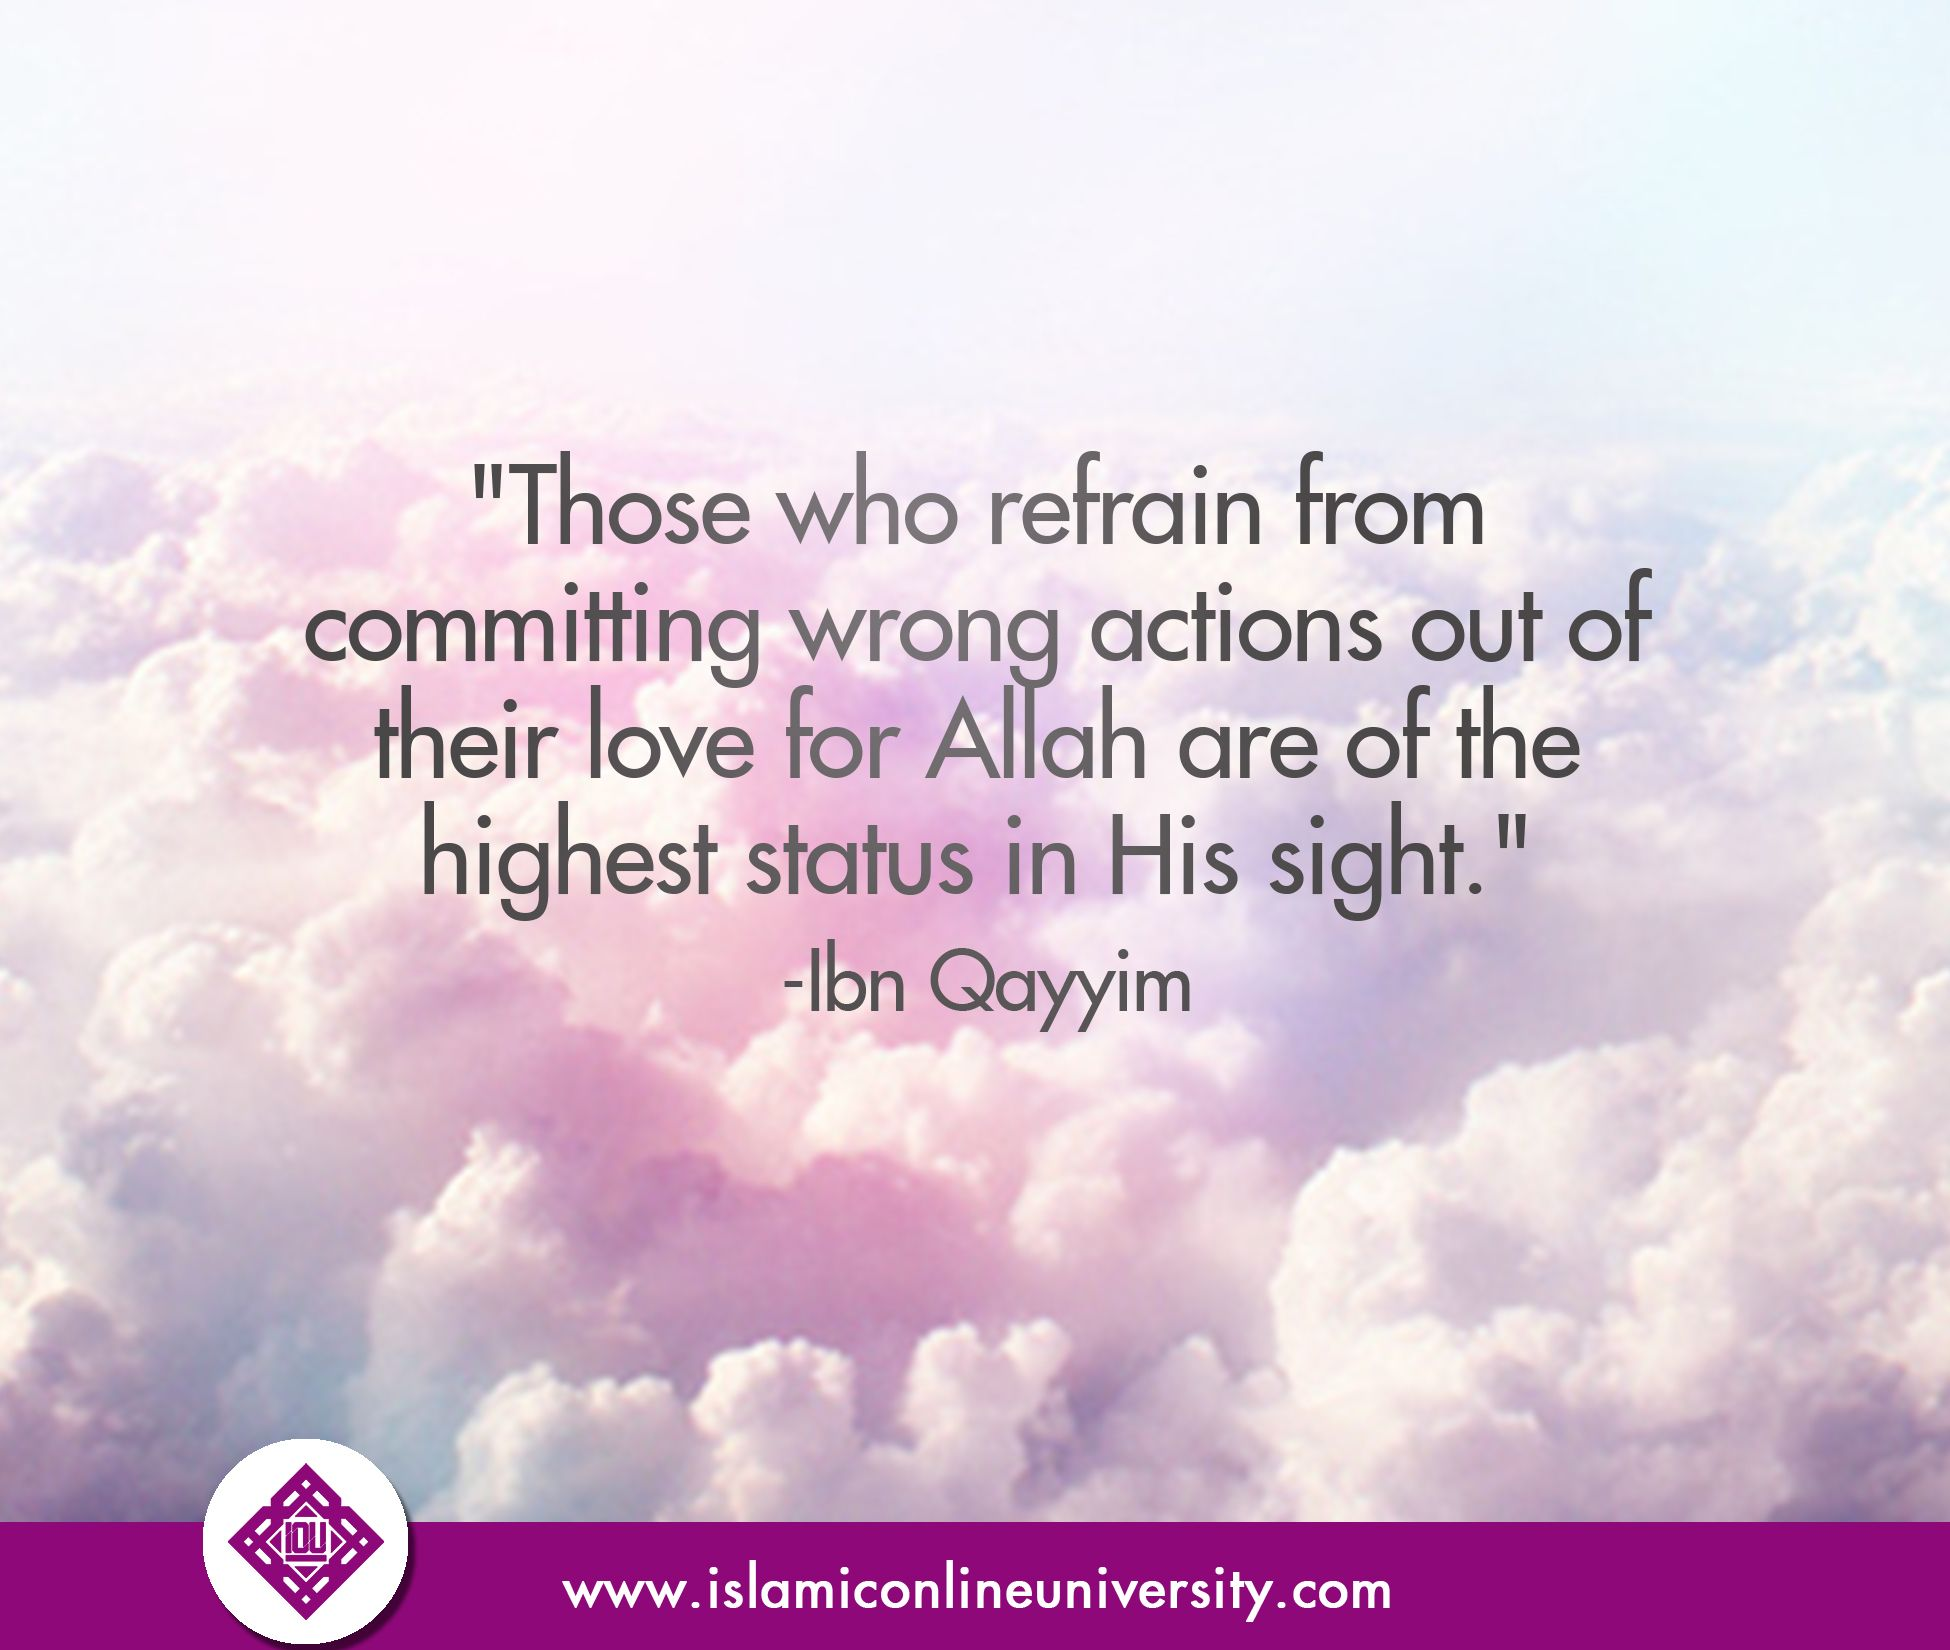 Quran Quotes About Love Those Who Refrain From Committing Wrong Actions Out Of Their Love